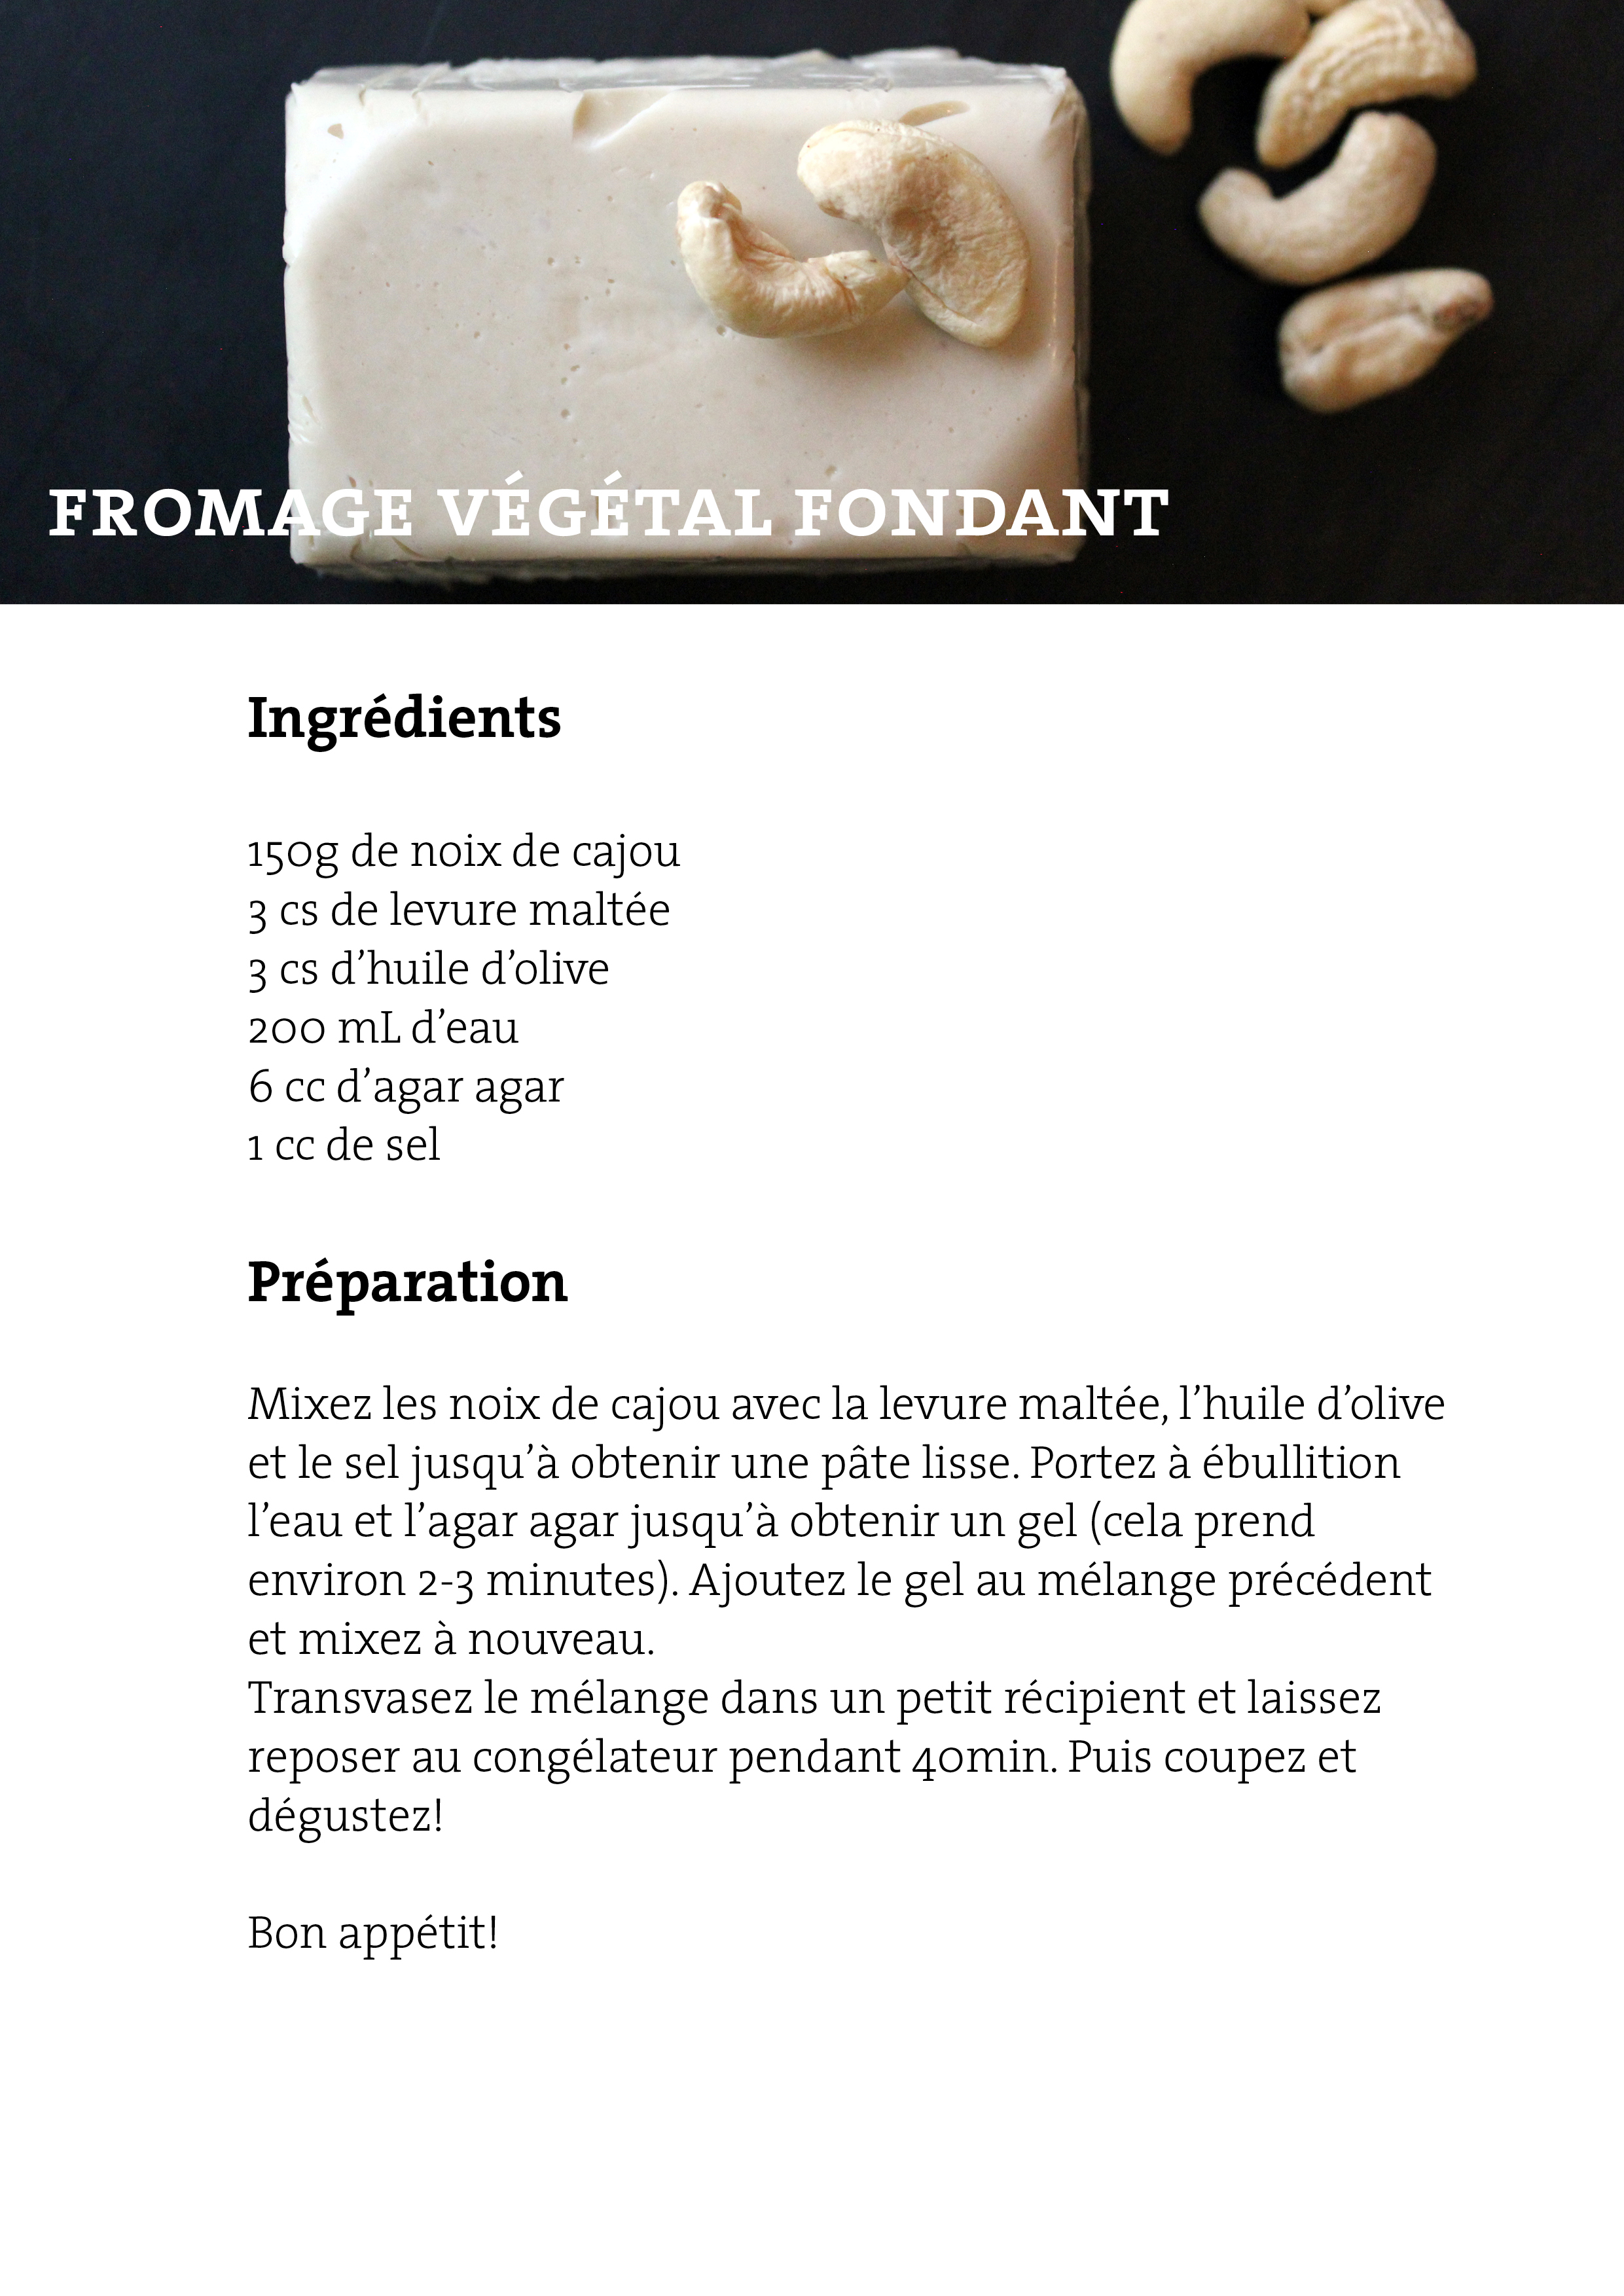 fromage fondant_recette.jpg